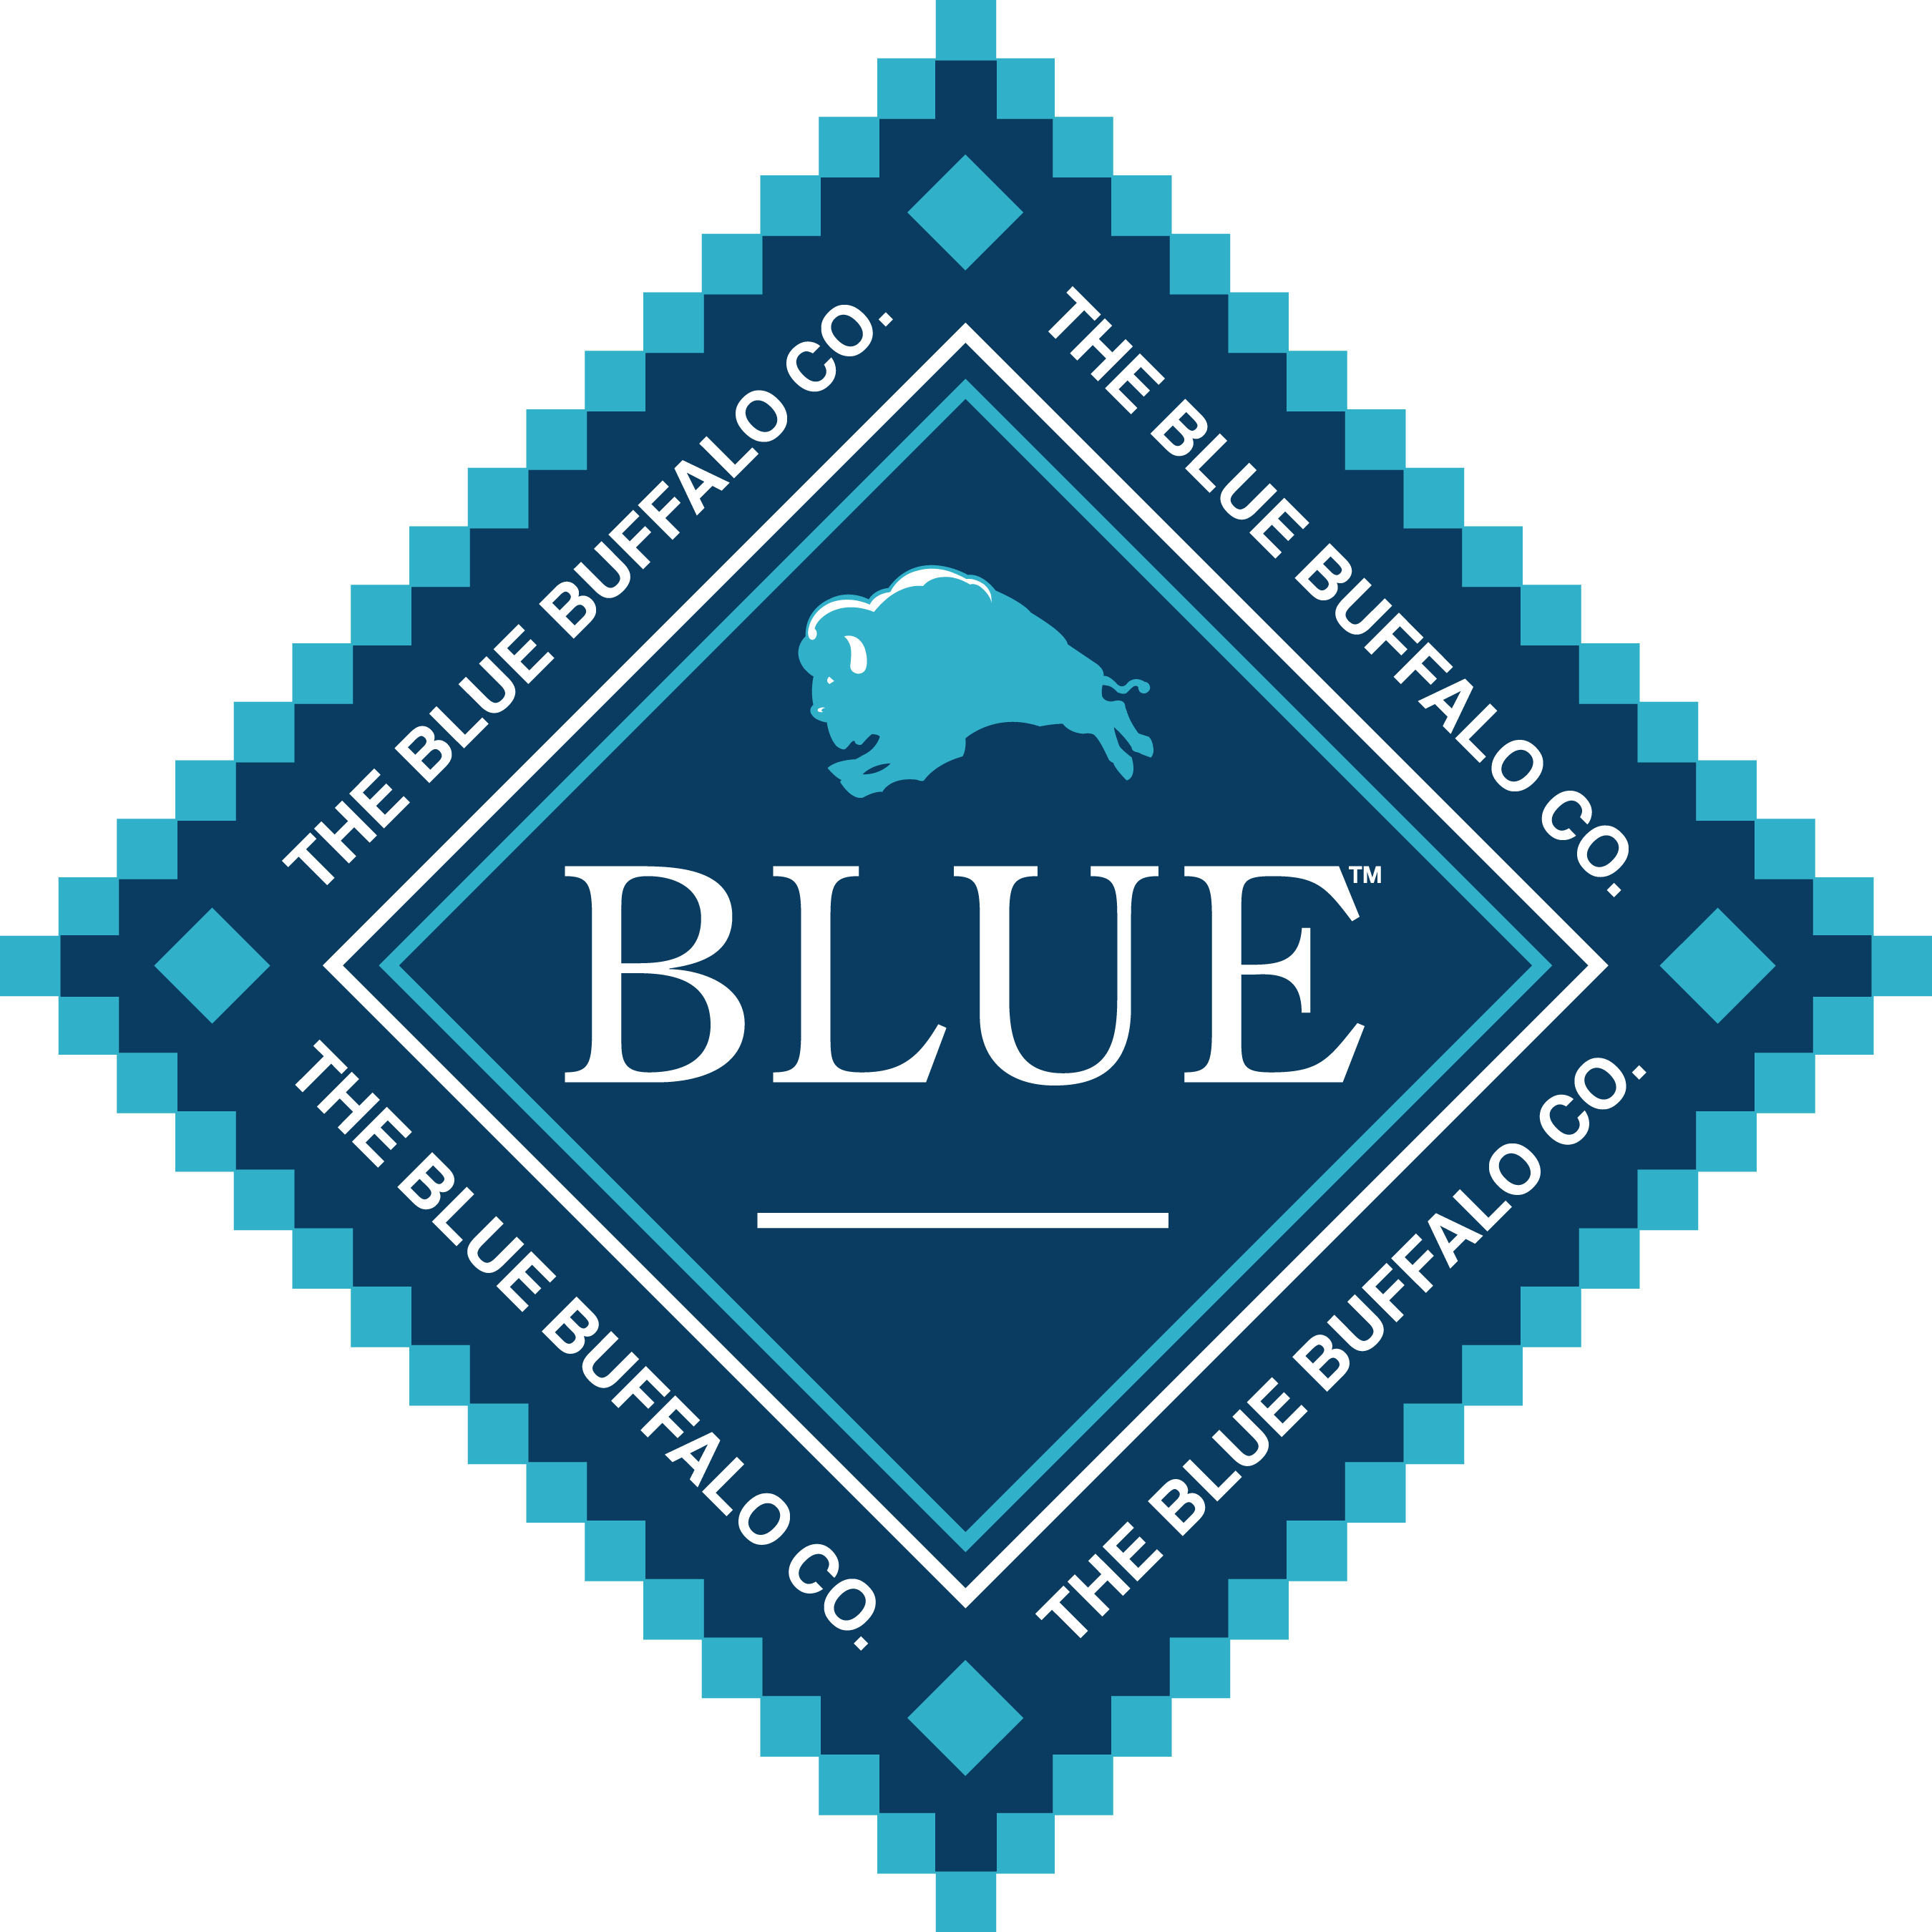 blue-buffalo-pet-products-inc-buff-rating-lowered-to-hold-at-zacks-investment-research.jpg